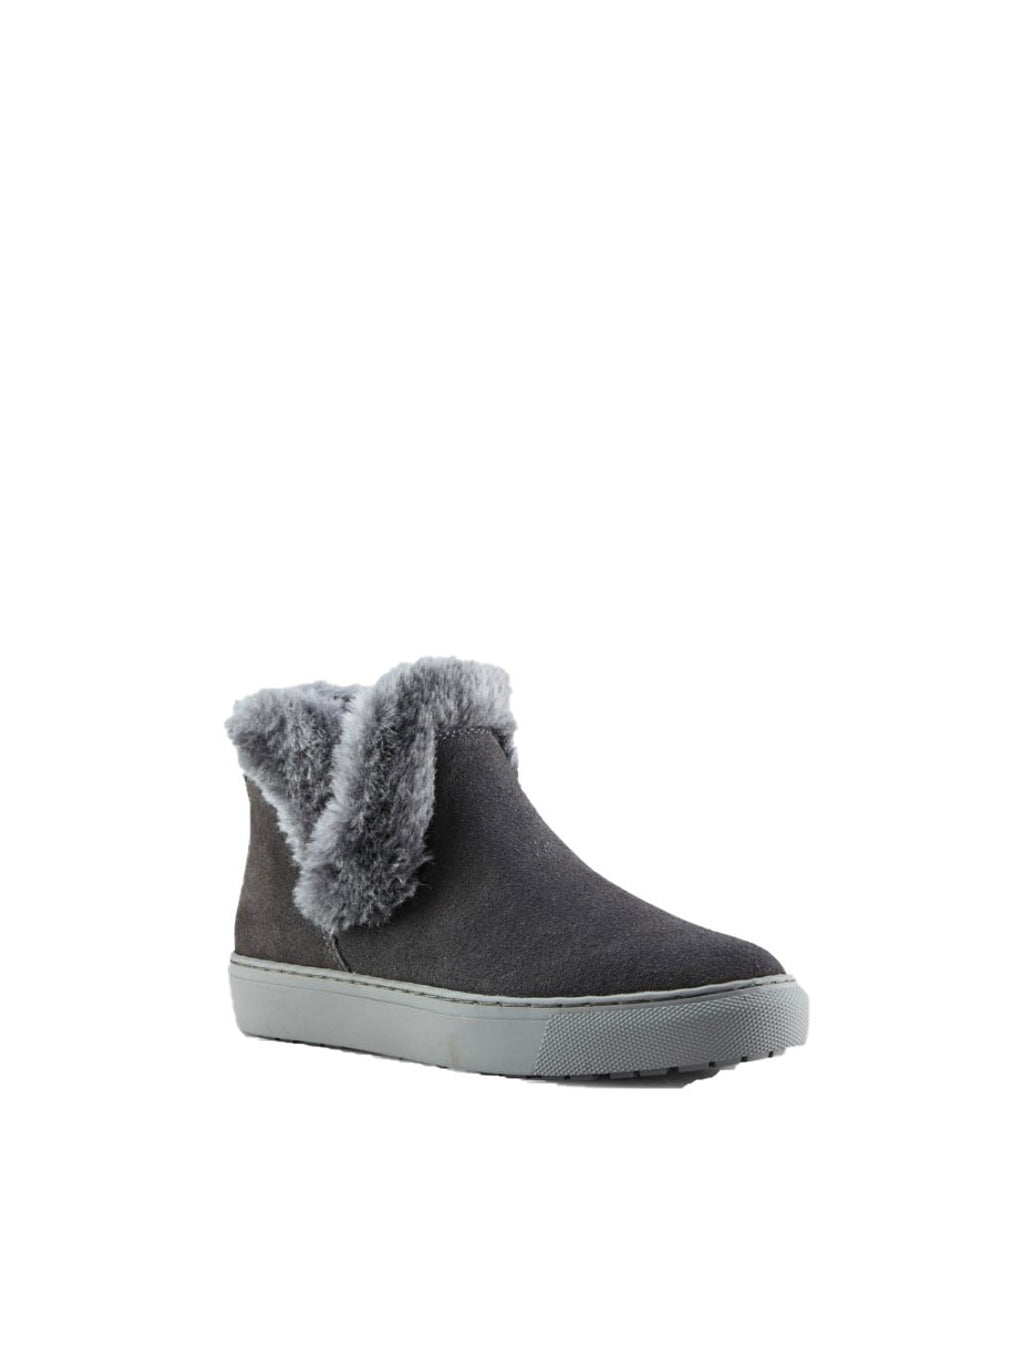 Cougar Duffy Winter Sneaker in Pewter